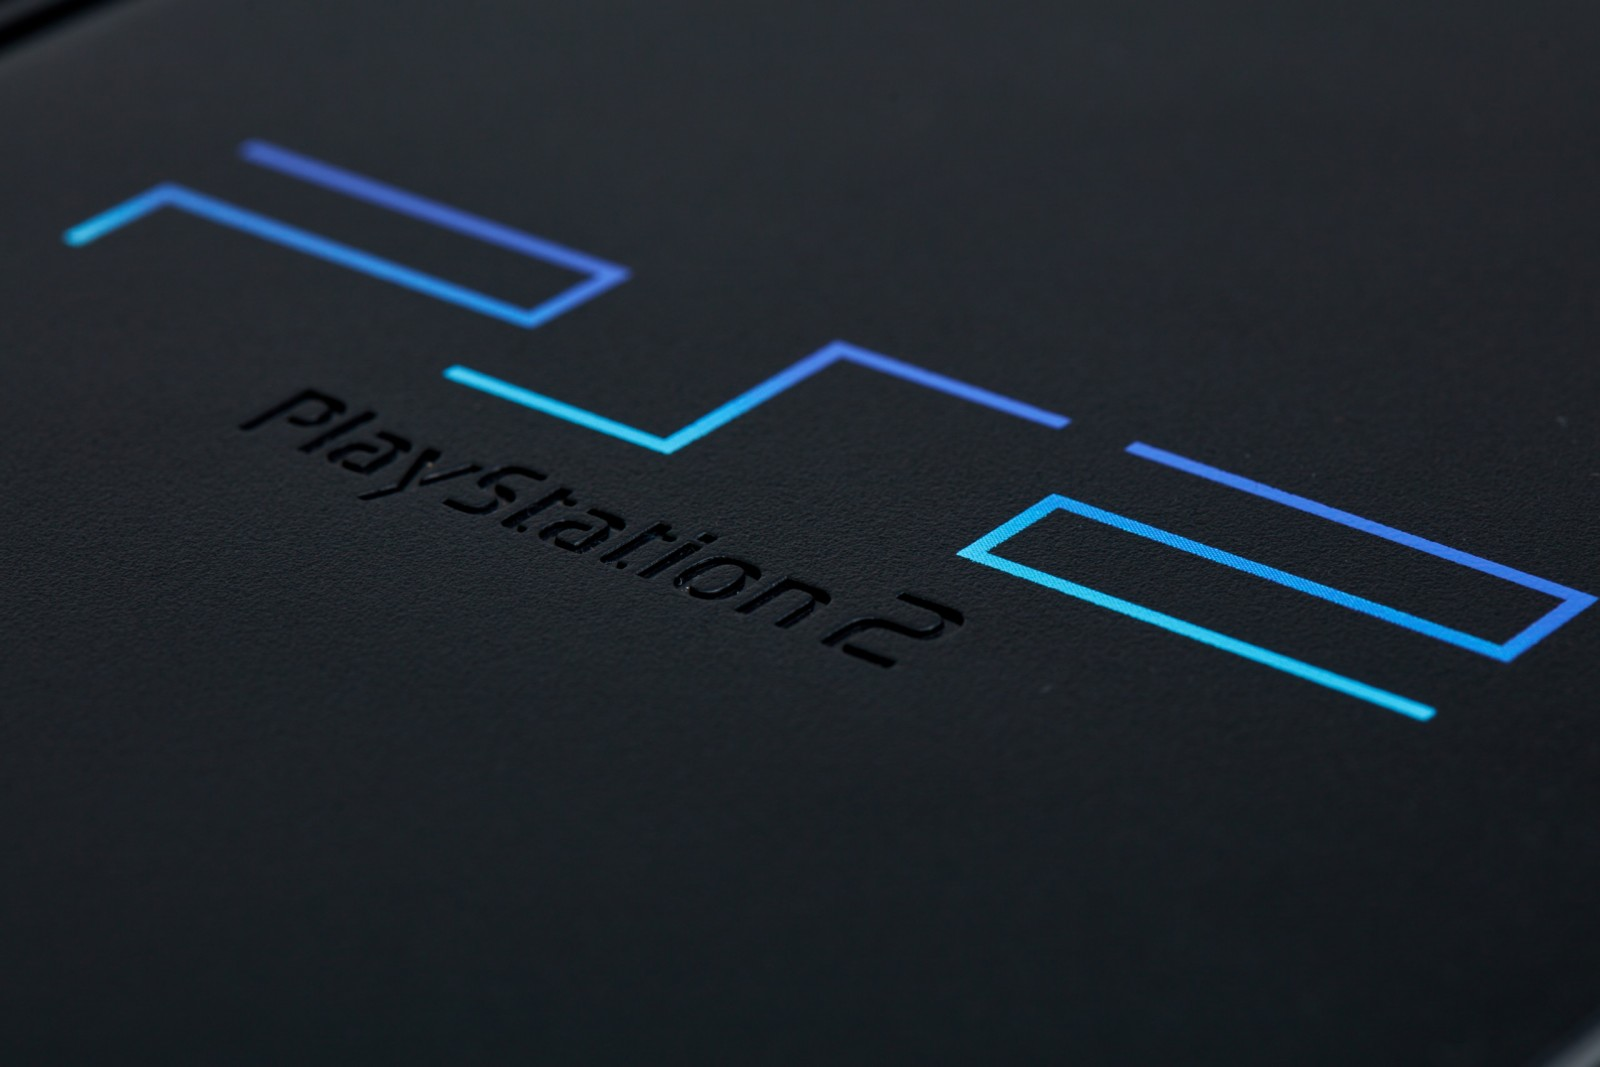 Sony PS2 Detail 1